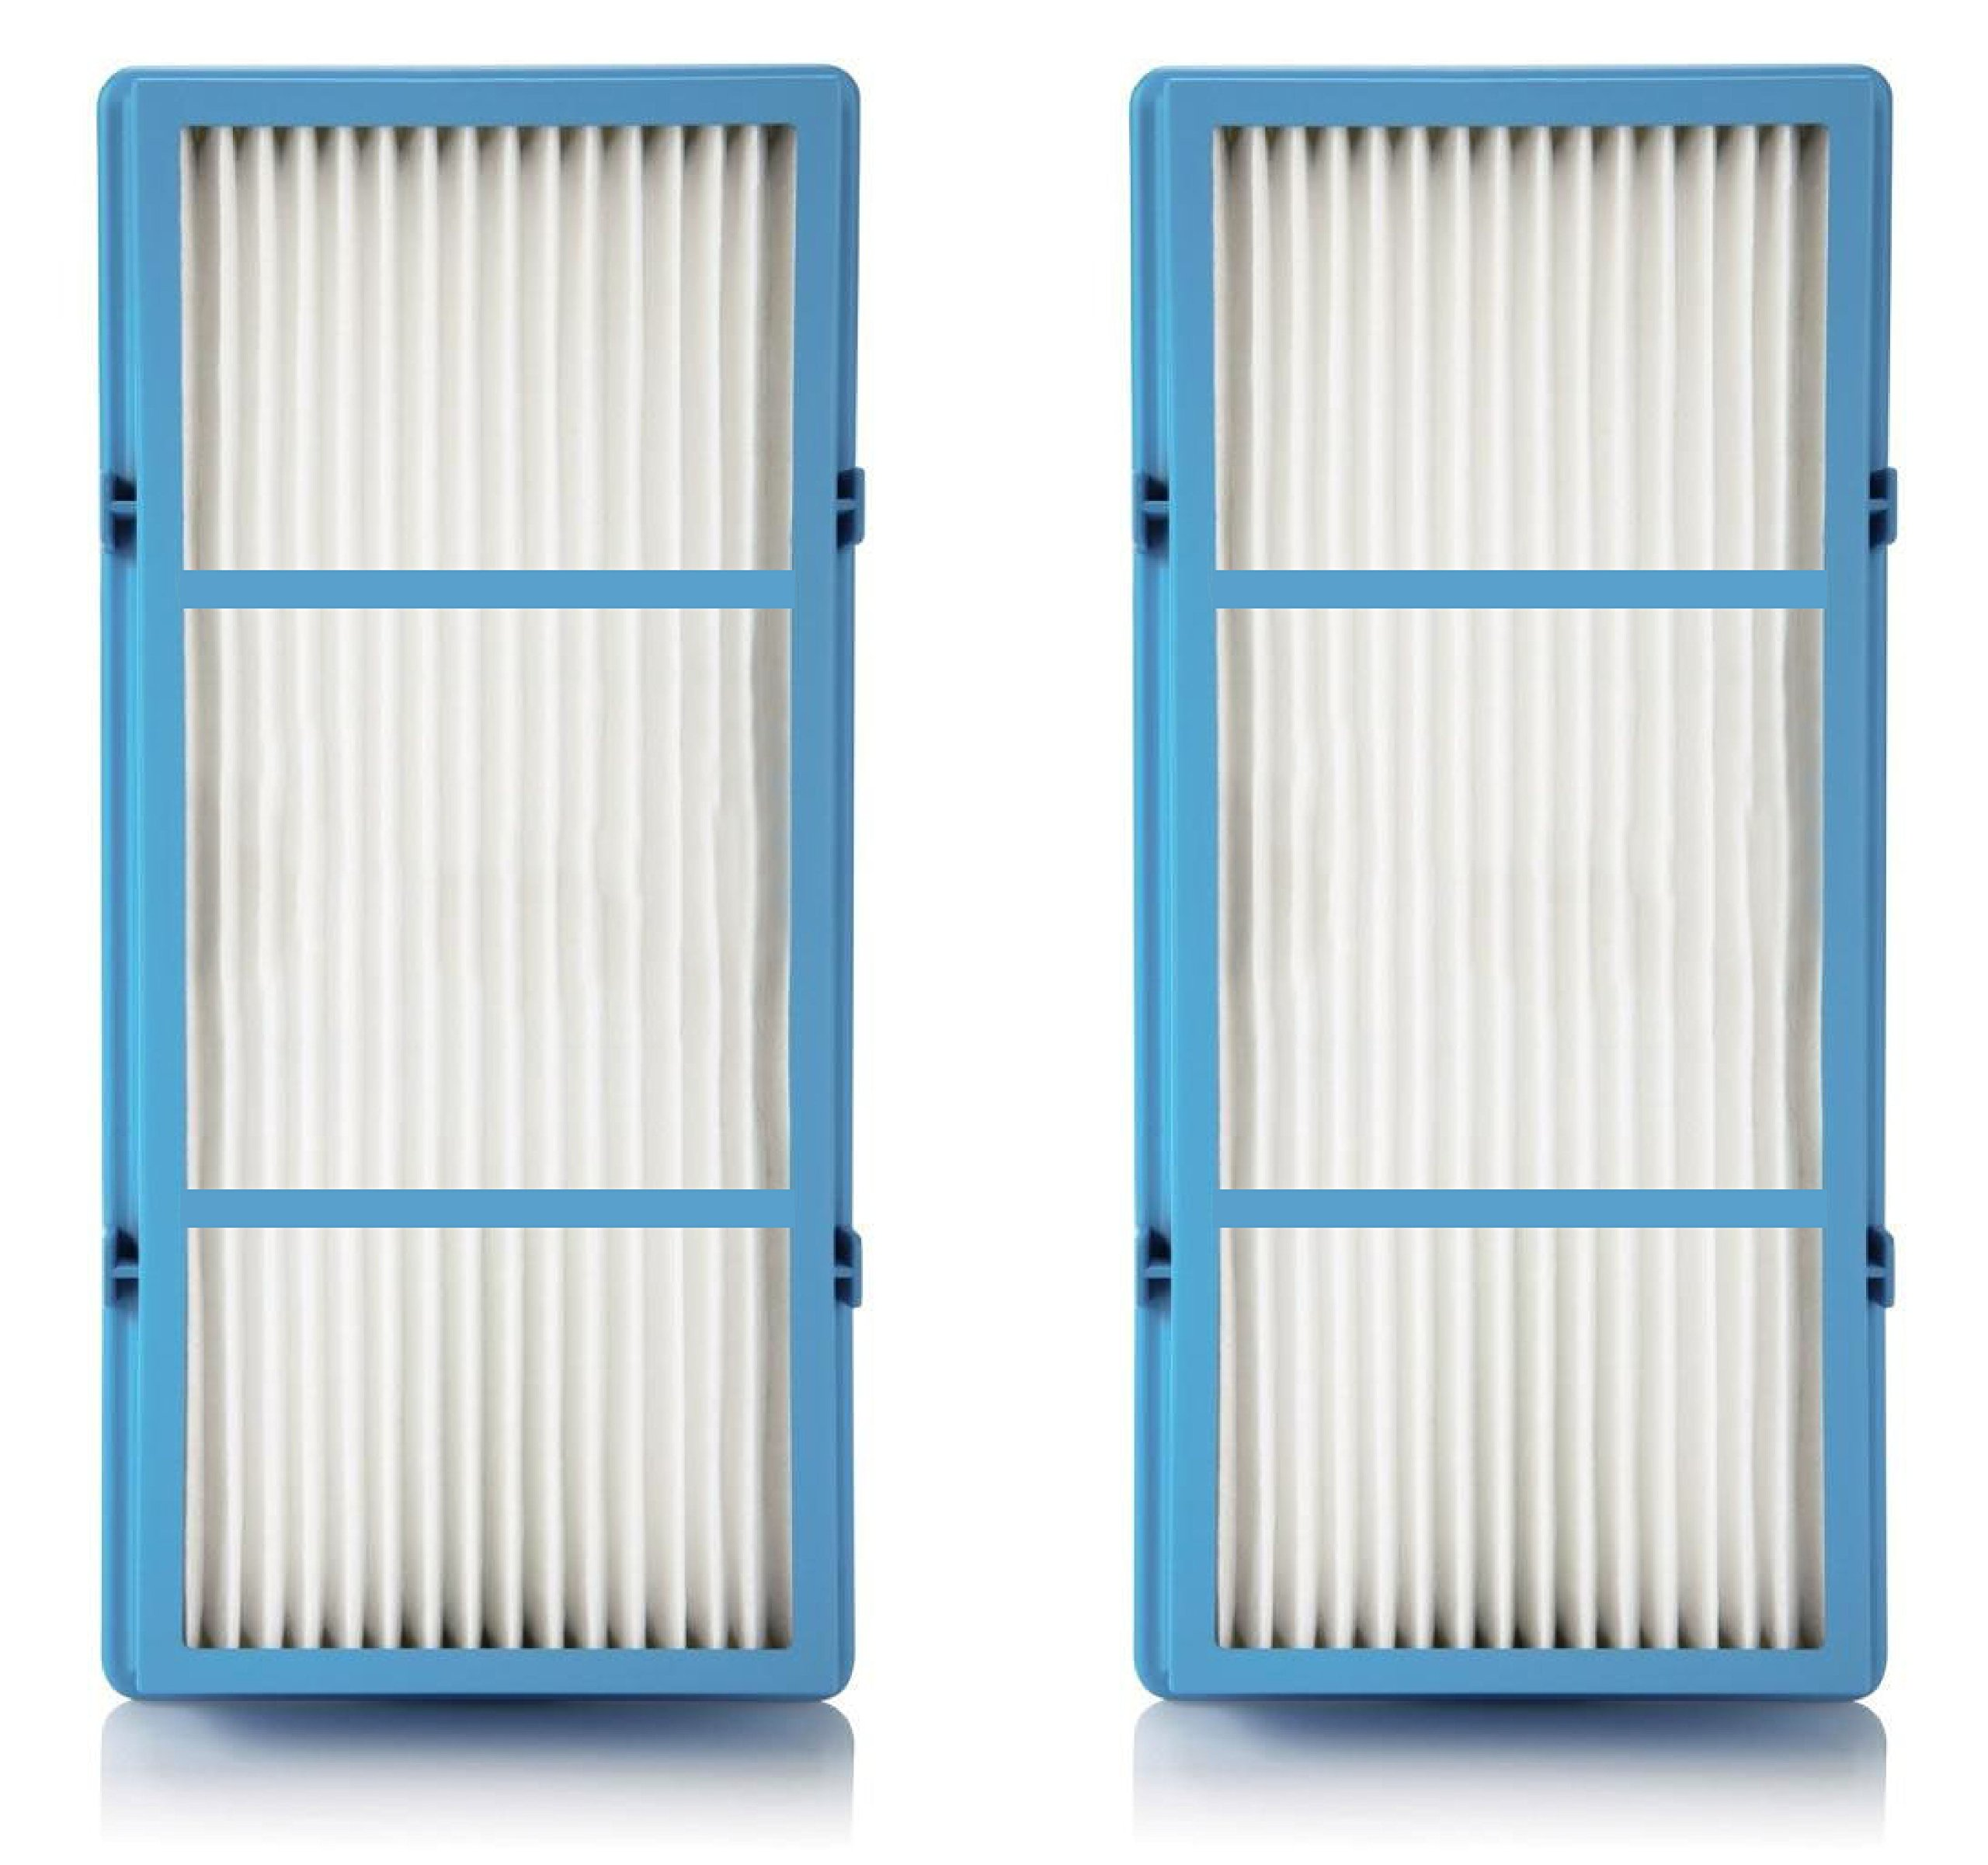 Replacement HEPA Filter For Holmes AER1 Series Total Air Filter, HAPF30AT For Purifier HAP242-NUC, 2 Filters